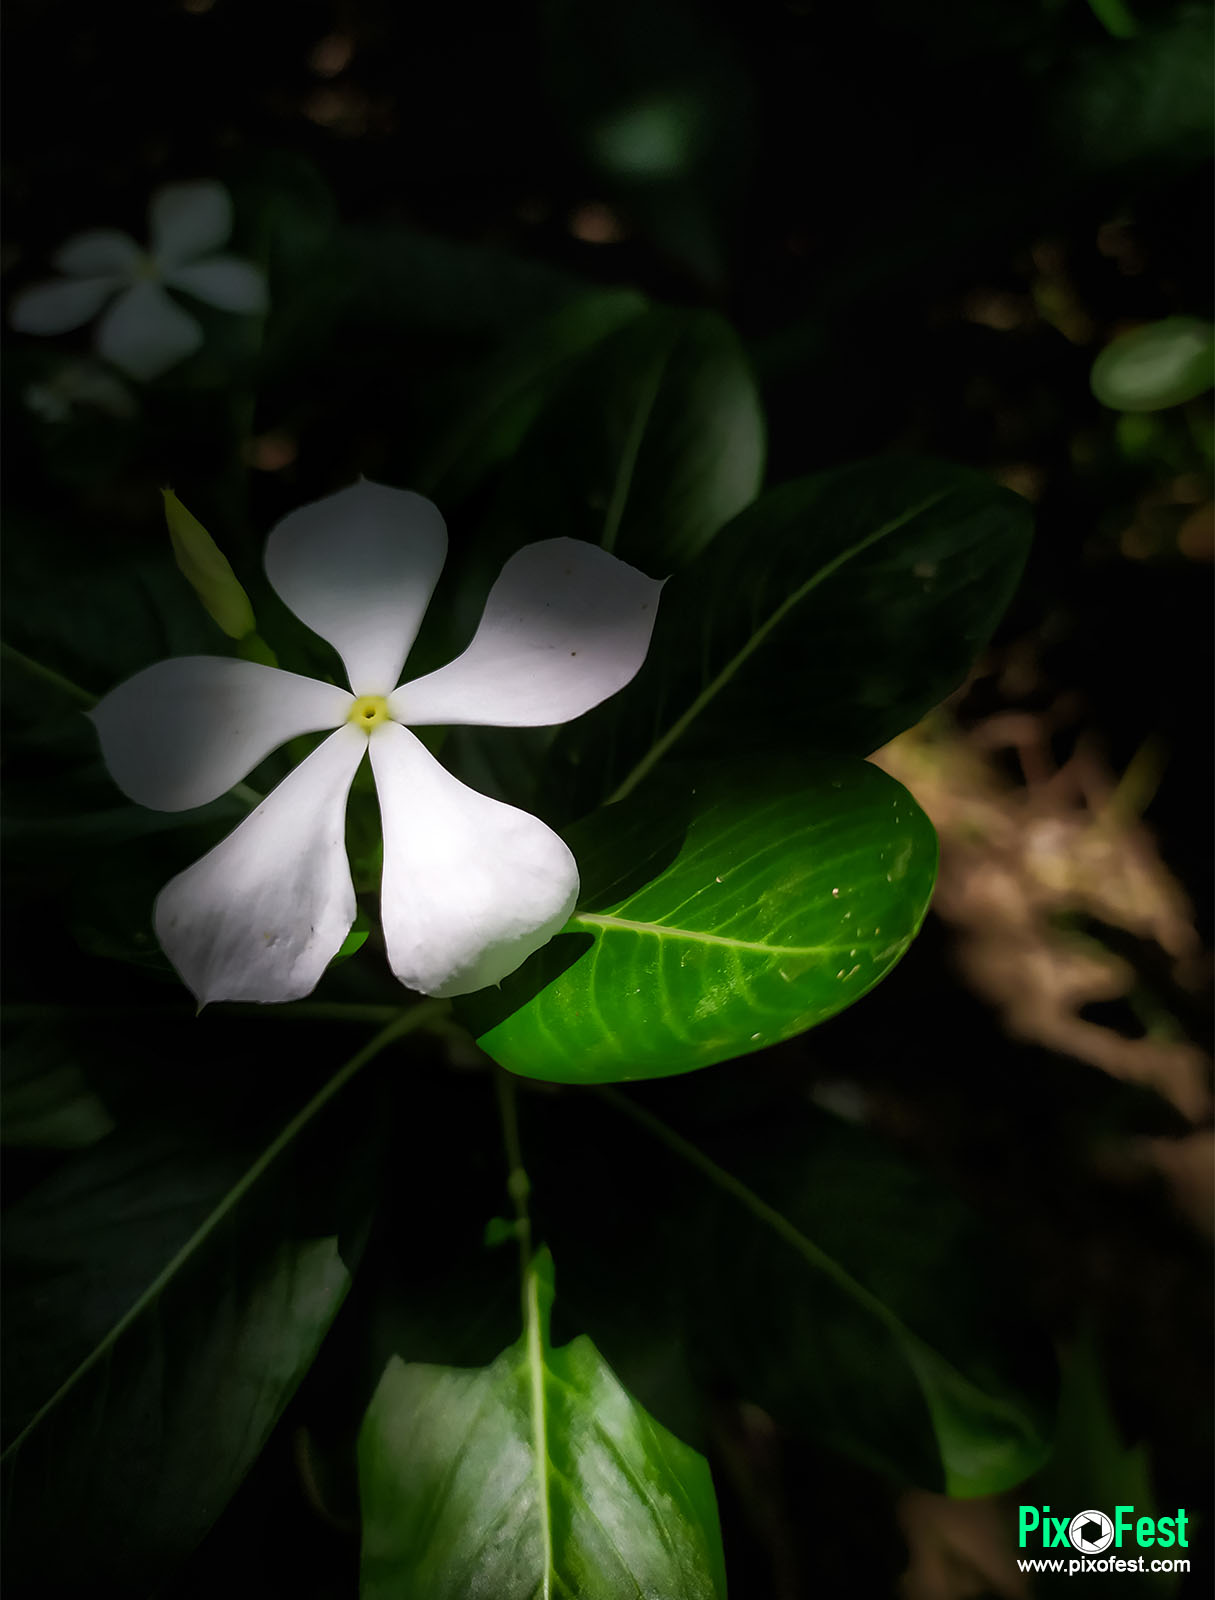 flower,flowers,whiteflower,lightandshadow,mobileclick,mobileshoot,mobilecapture,localflower,beautifulflower,pixofest